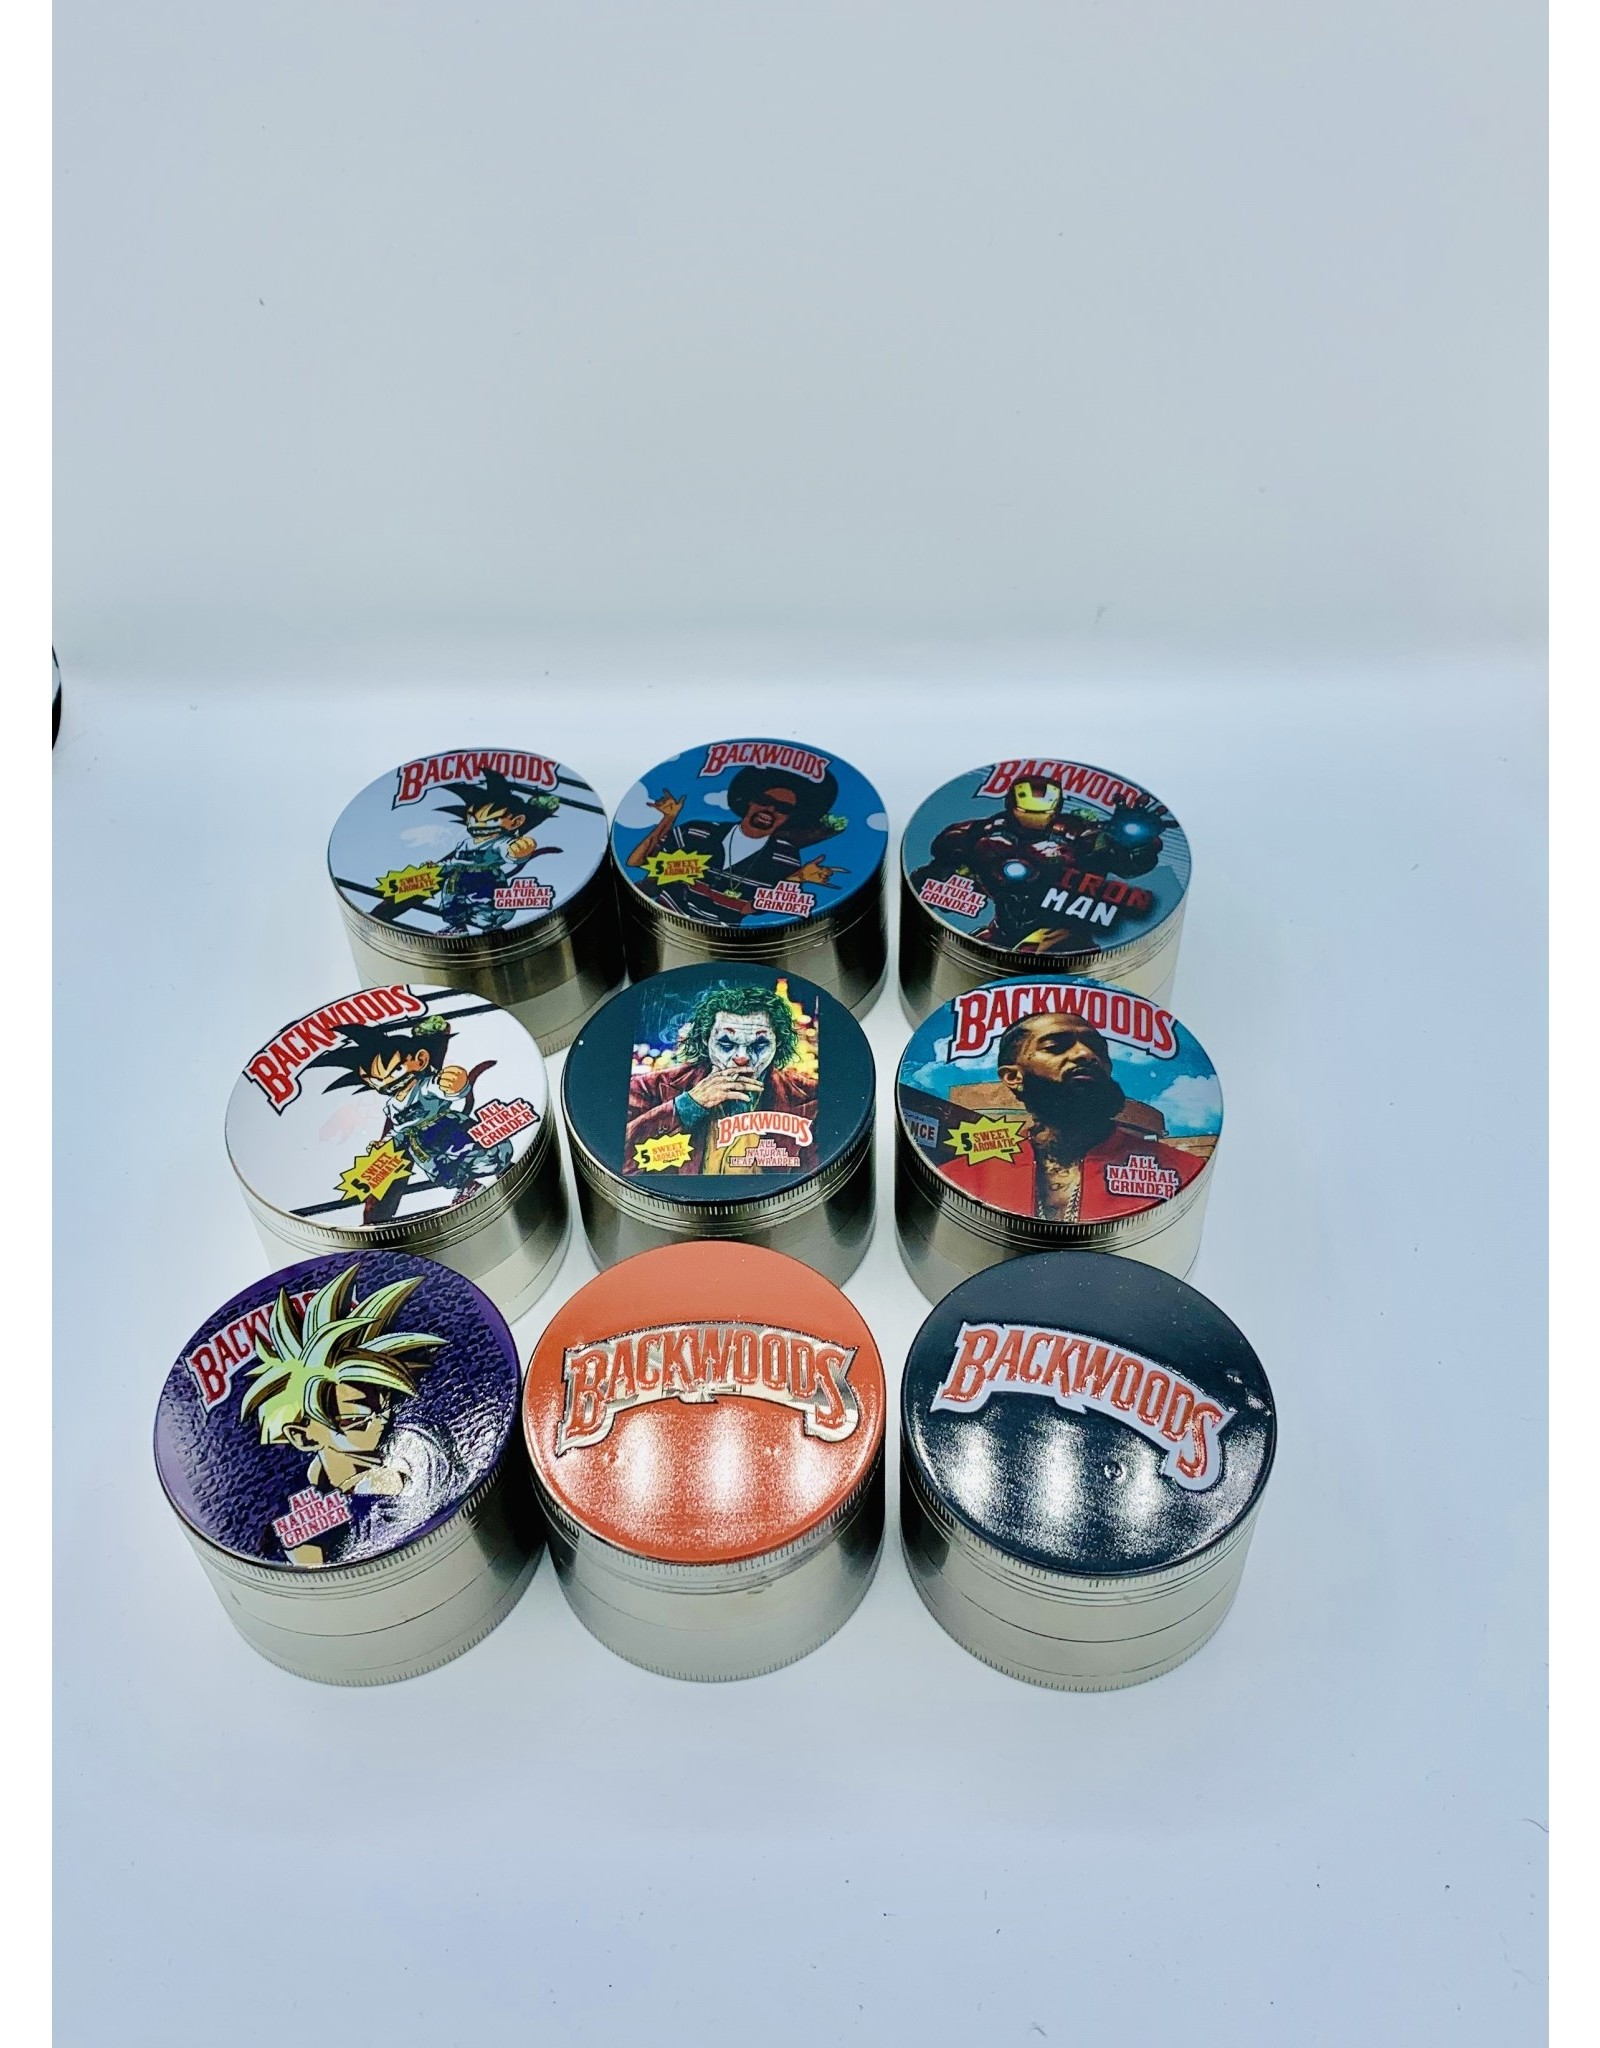 4 PIECE ZINC GRINDER WITH STICKER 2.5